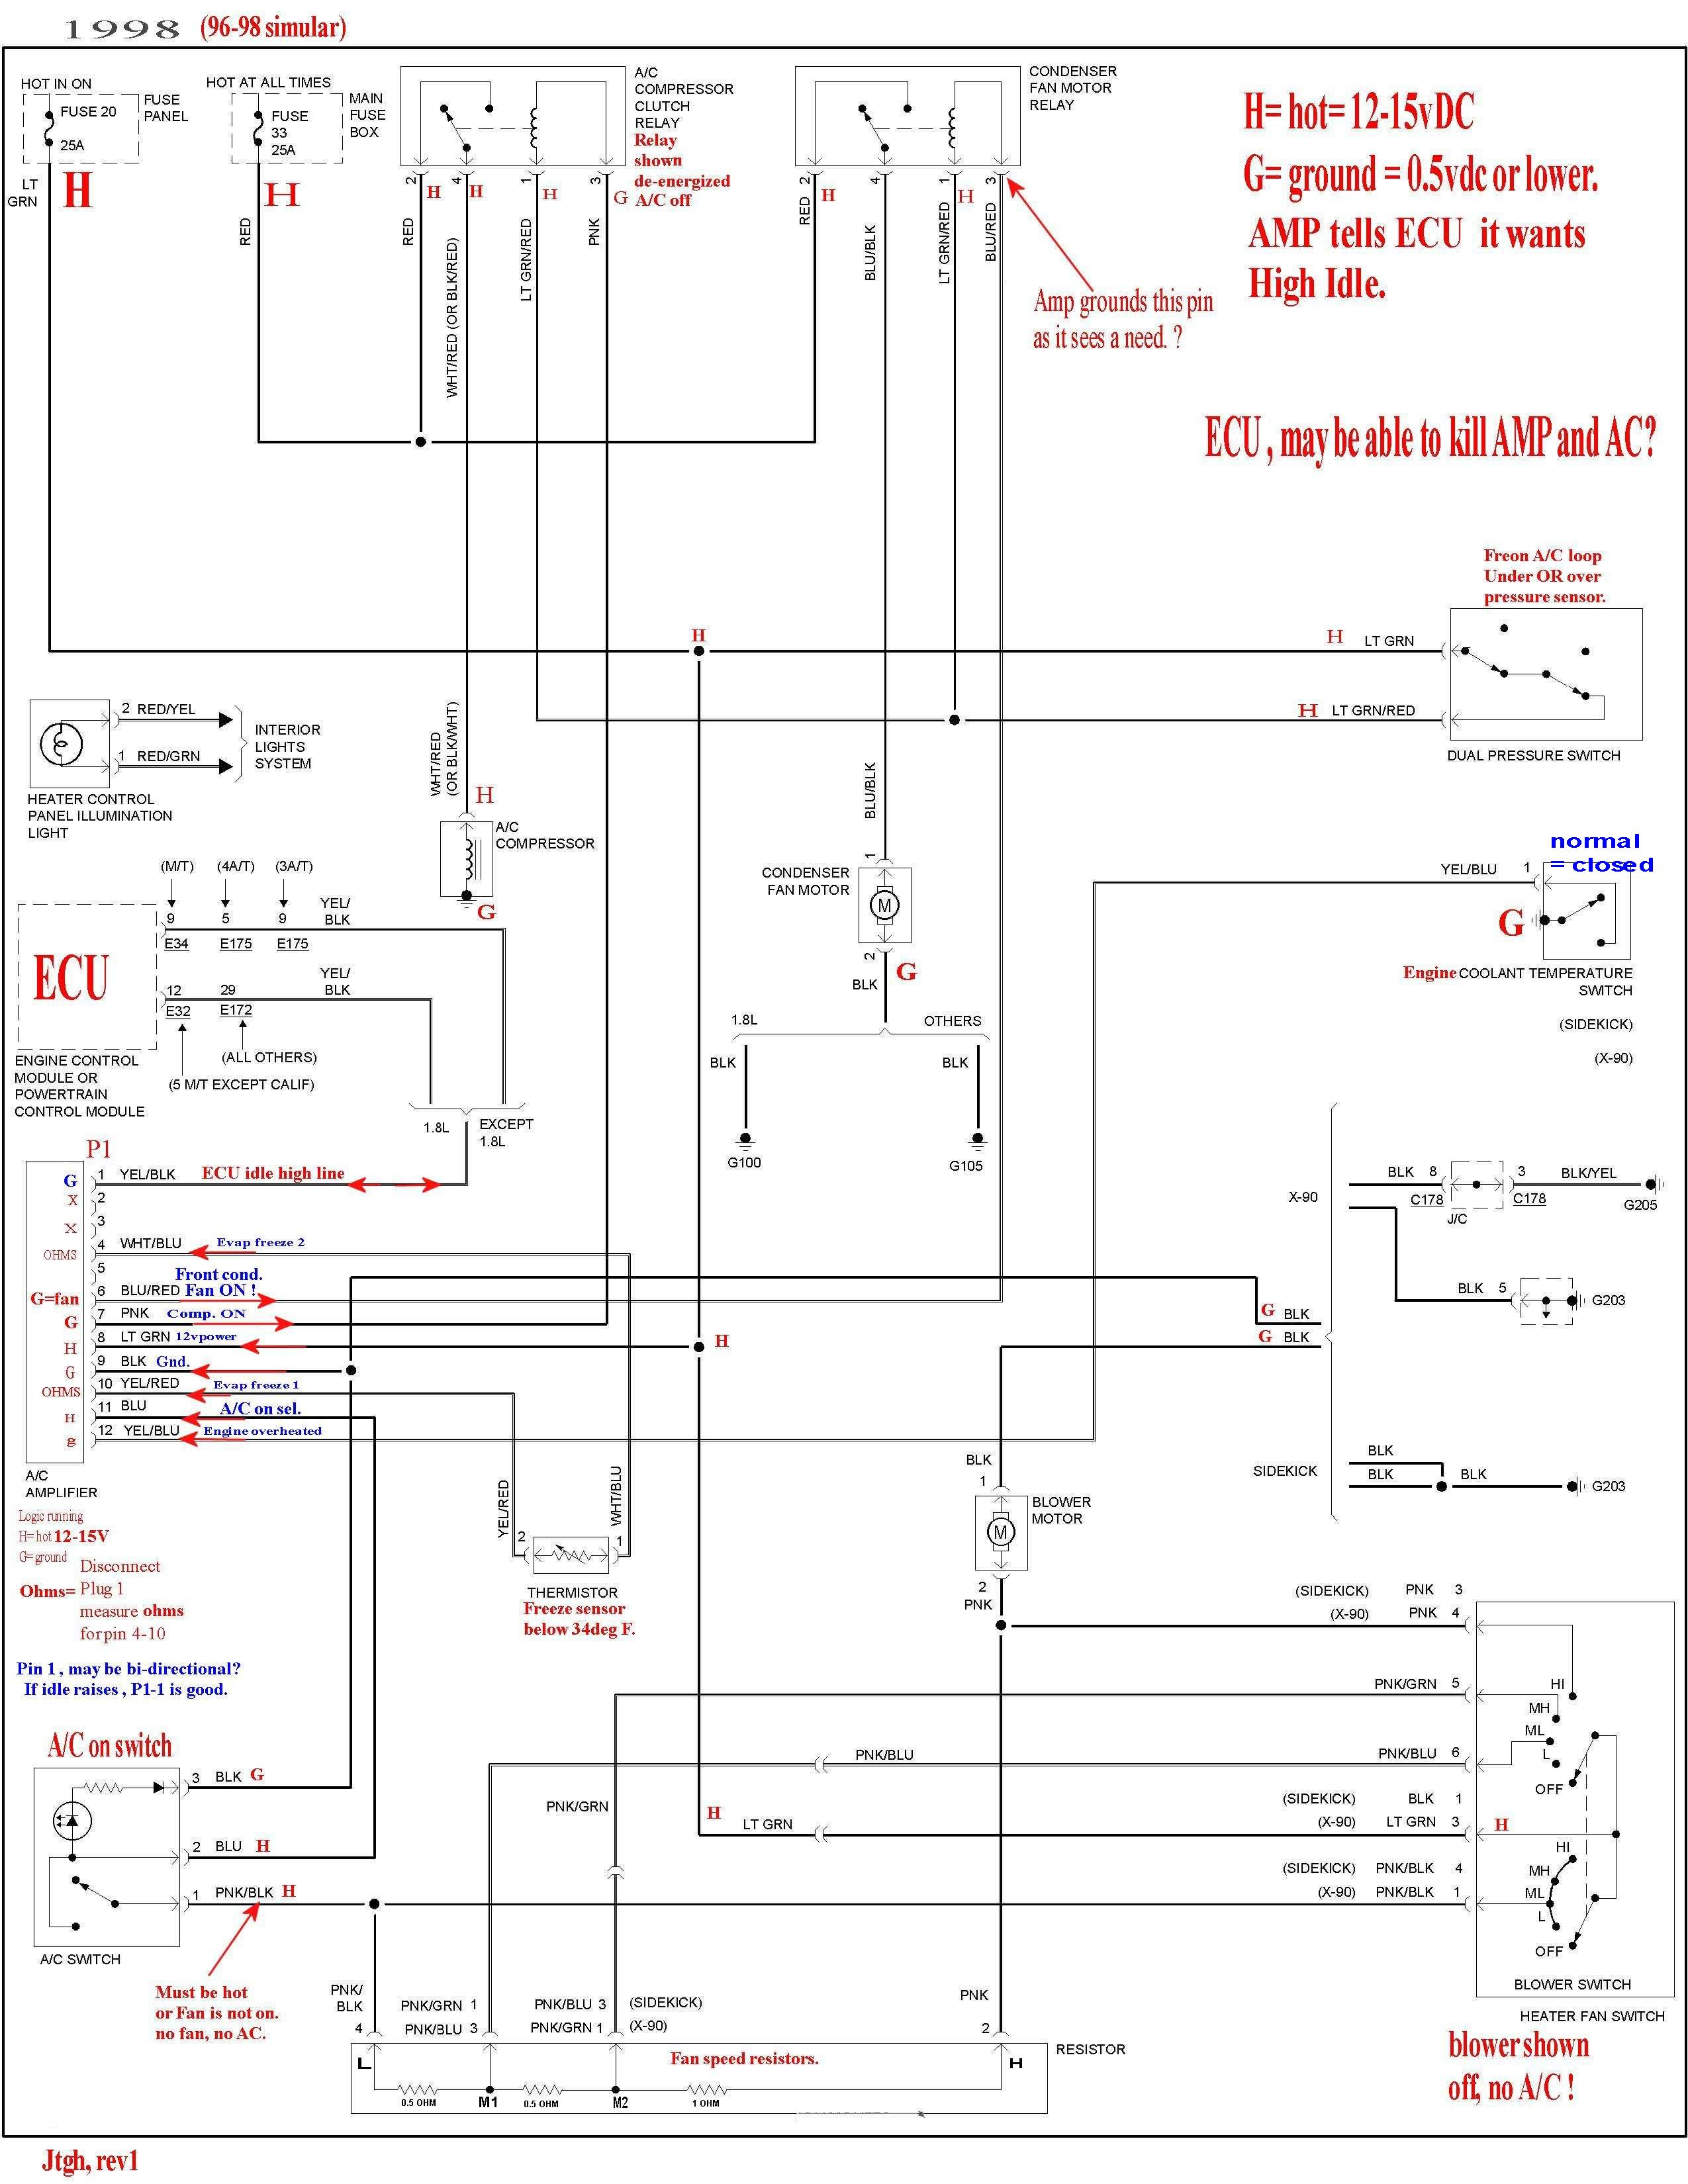 98 AC lever air conditioner repair suzuki f6a wiring diagram at gsmx.co